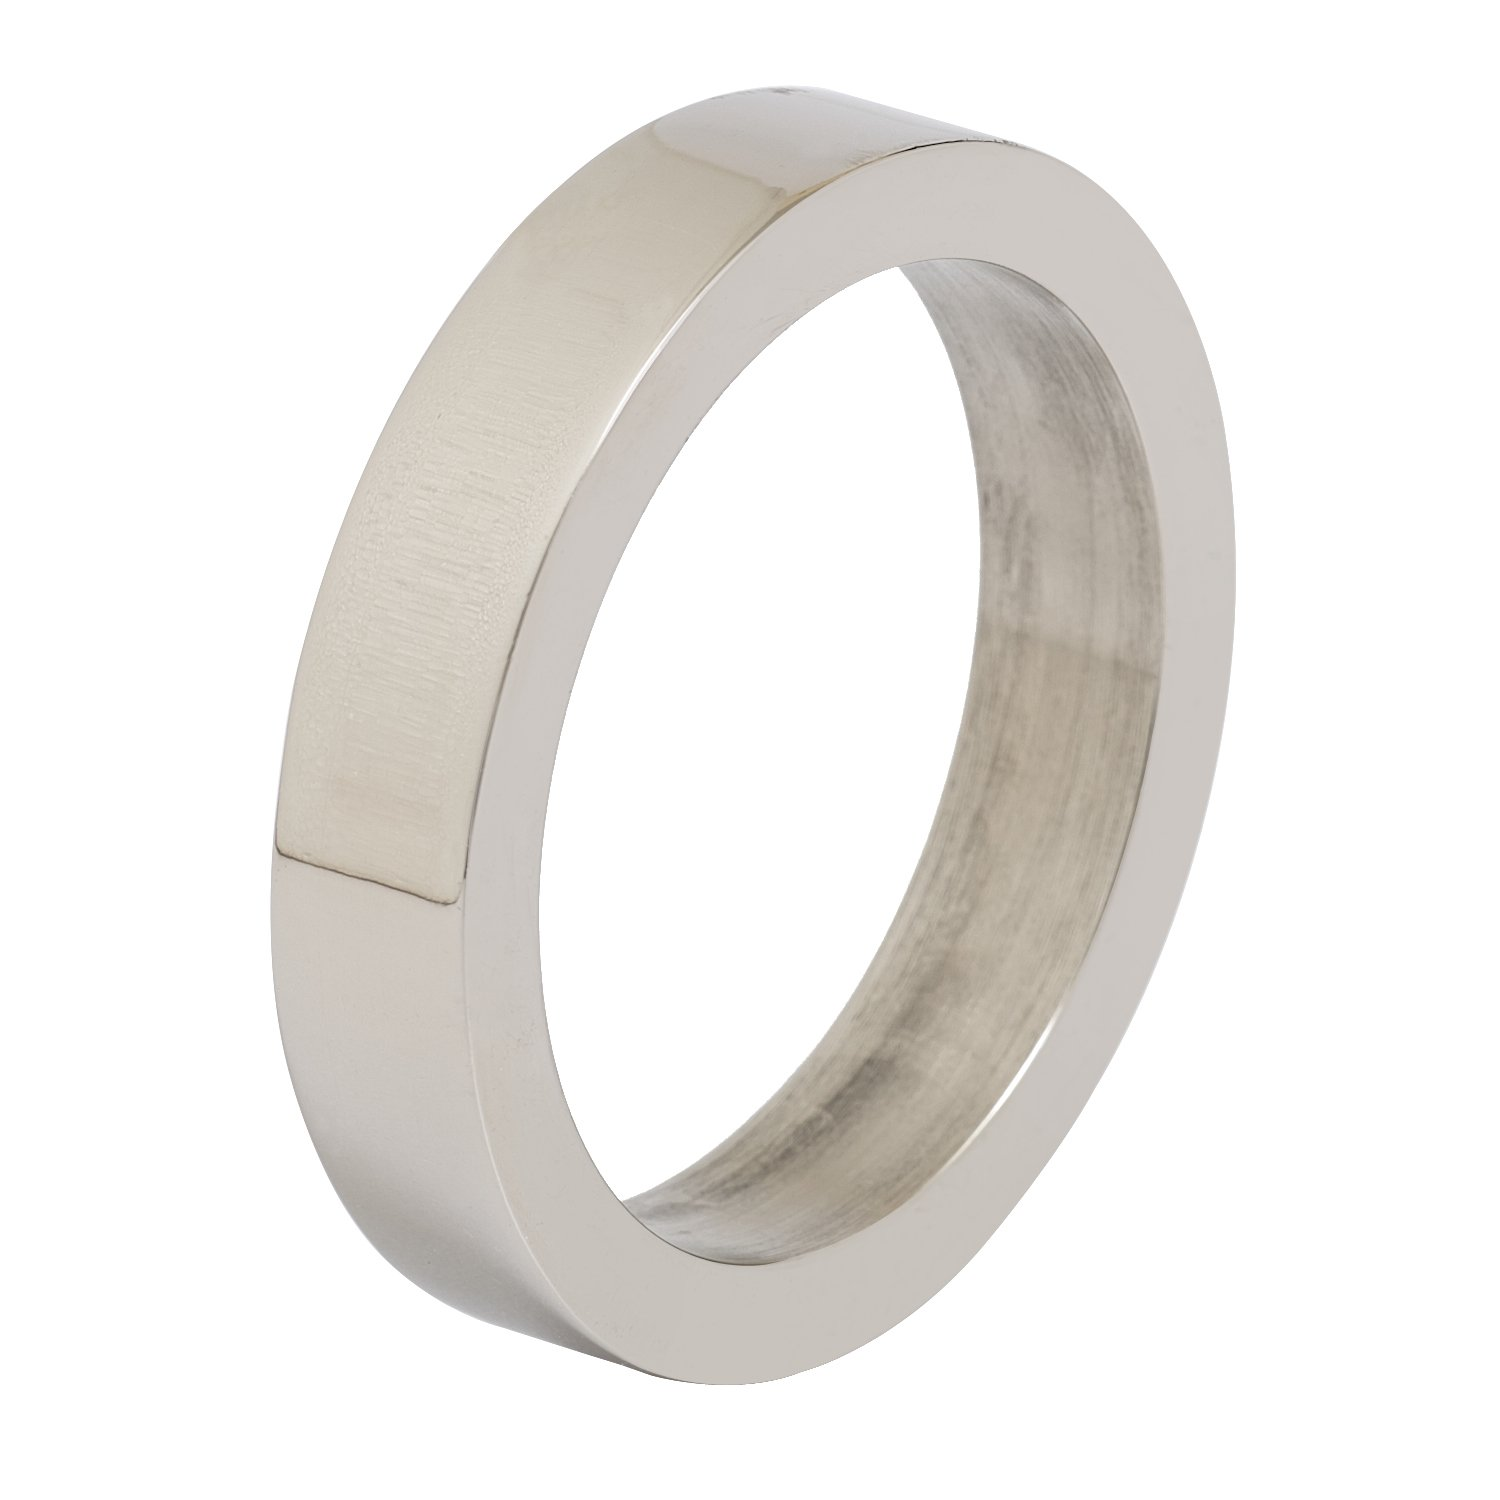 Dii Contemporary Chic Napkin Rings For Dinner Parties, Weddings Receptions,